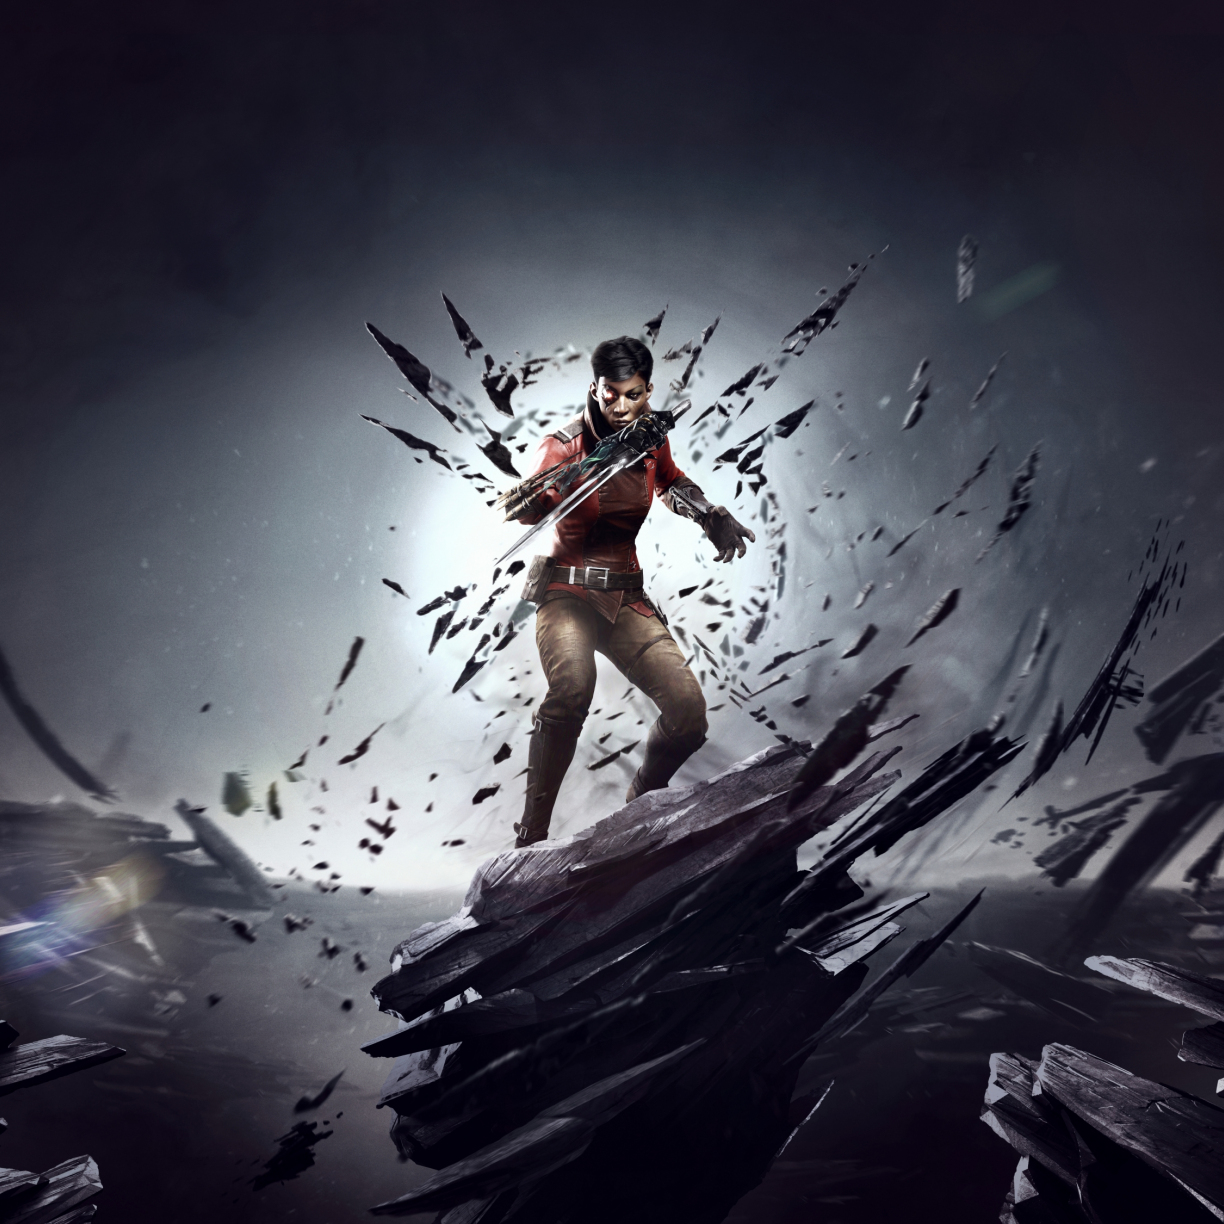 1224x1224 wallpaper Dishonored: Death Of The Outsider, 2017 game, video game